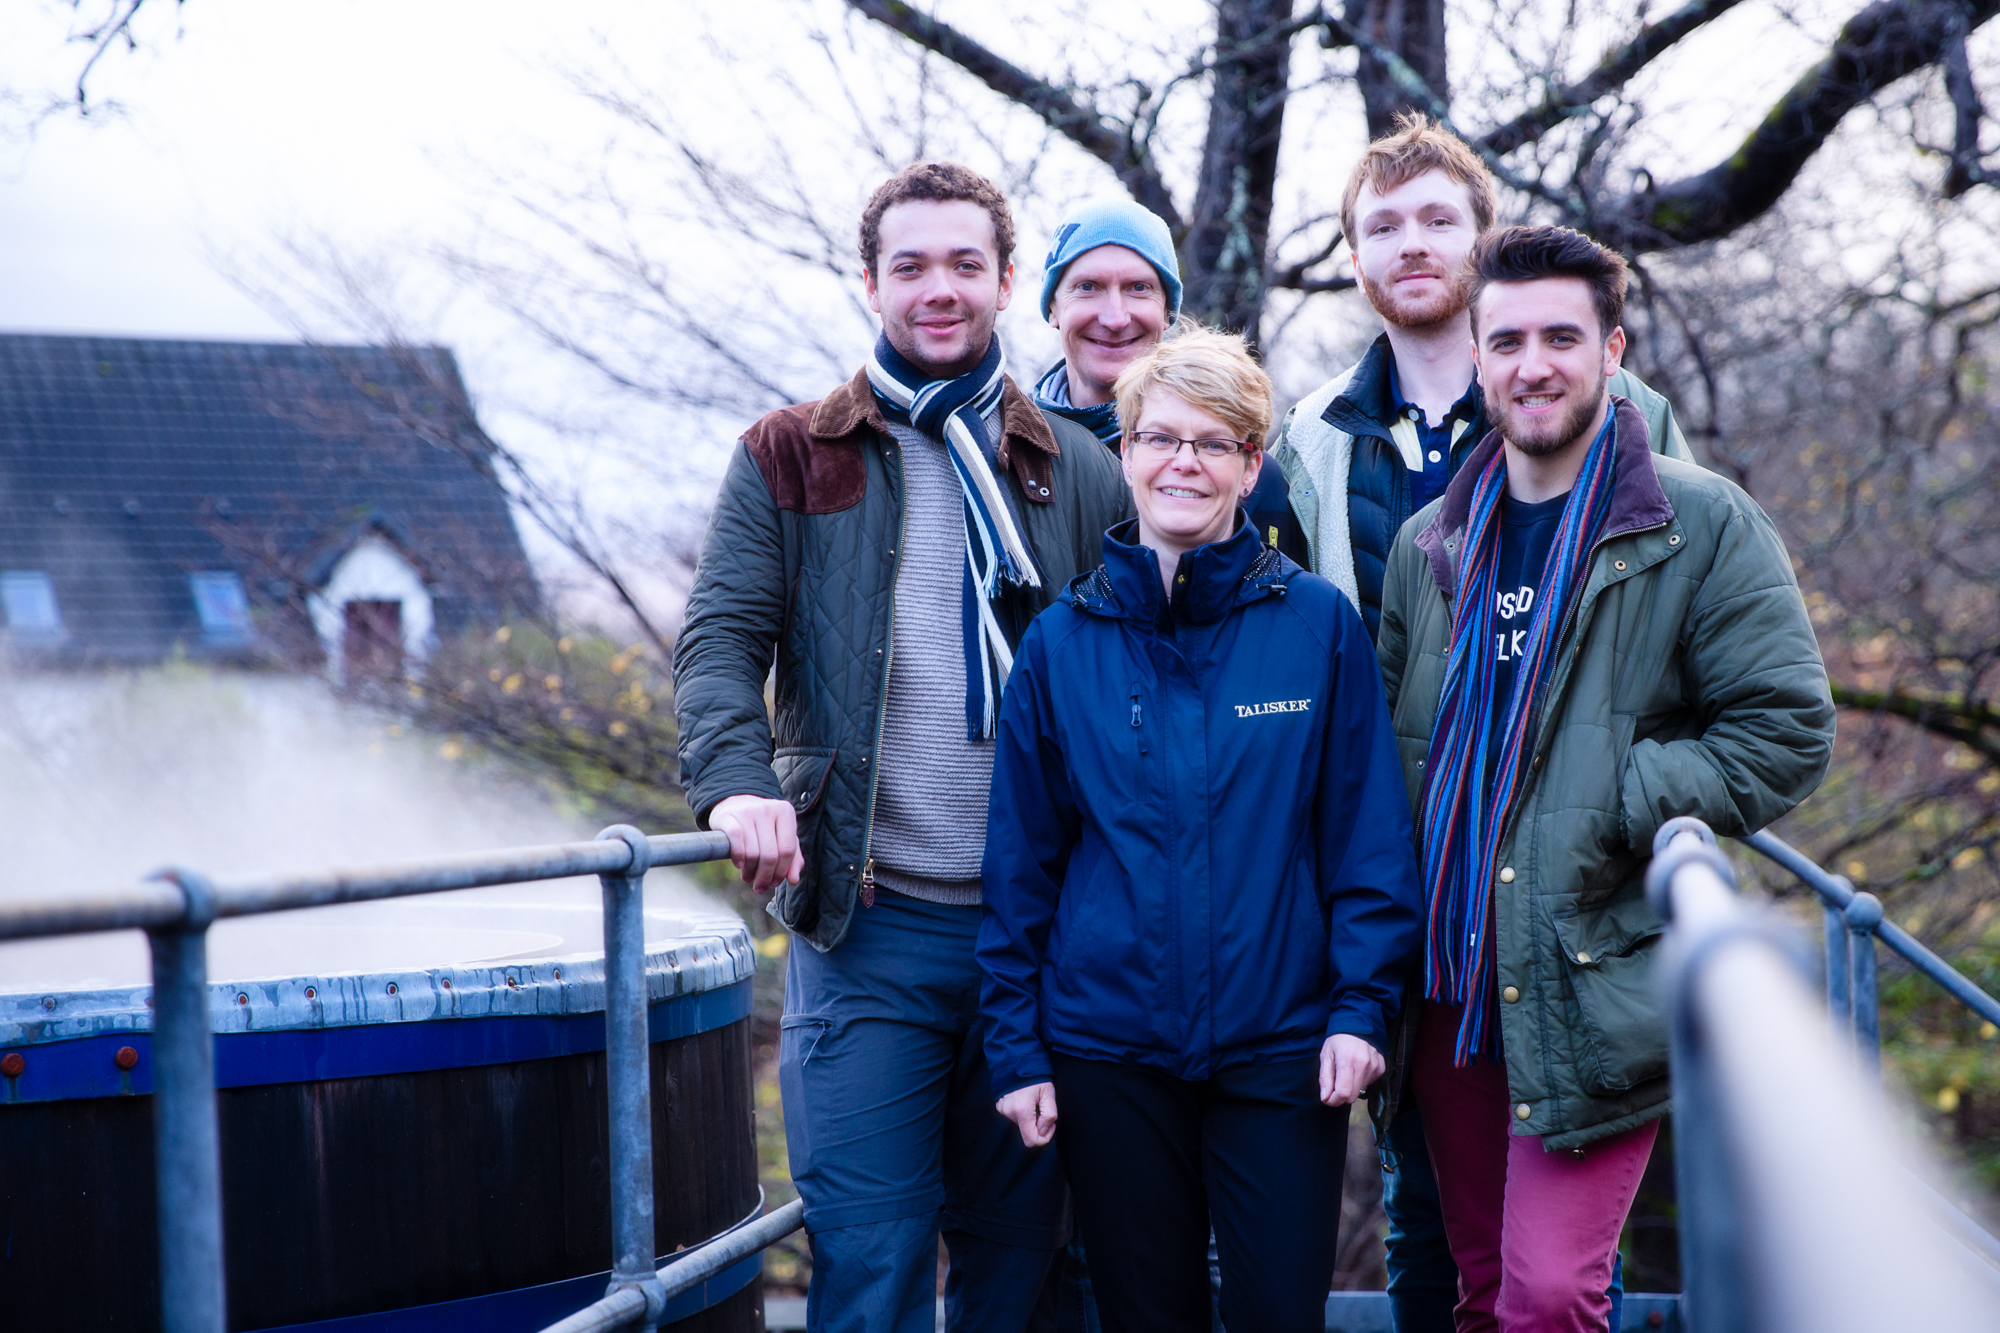 A huge thanks to Lesley Taylor at Talisker for hosting our team on a private, and very informative, tour around the distillery. She says Atlantic Discovery is her top favourite team!